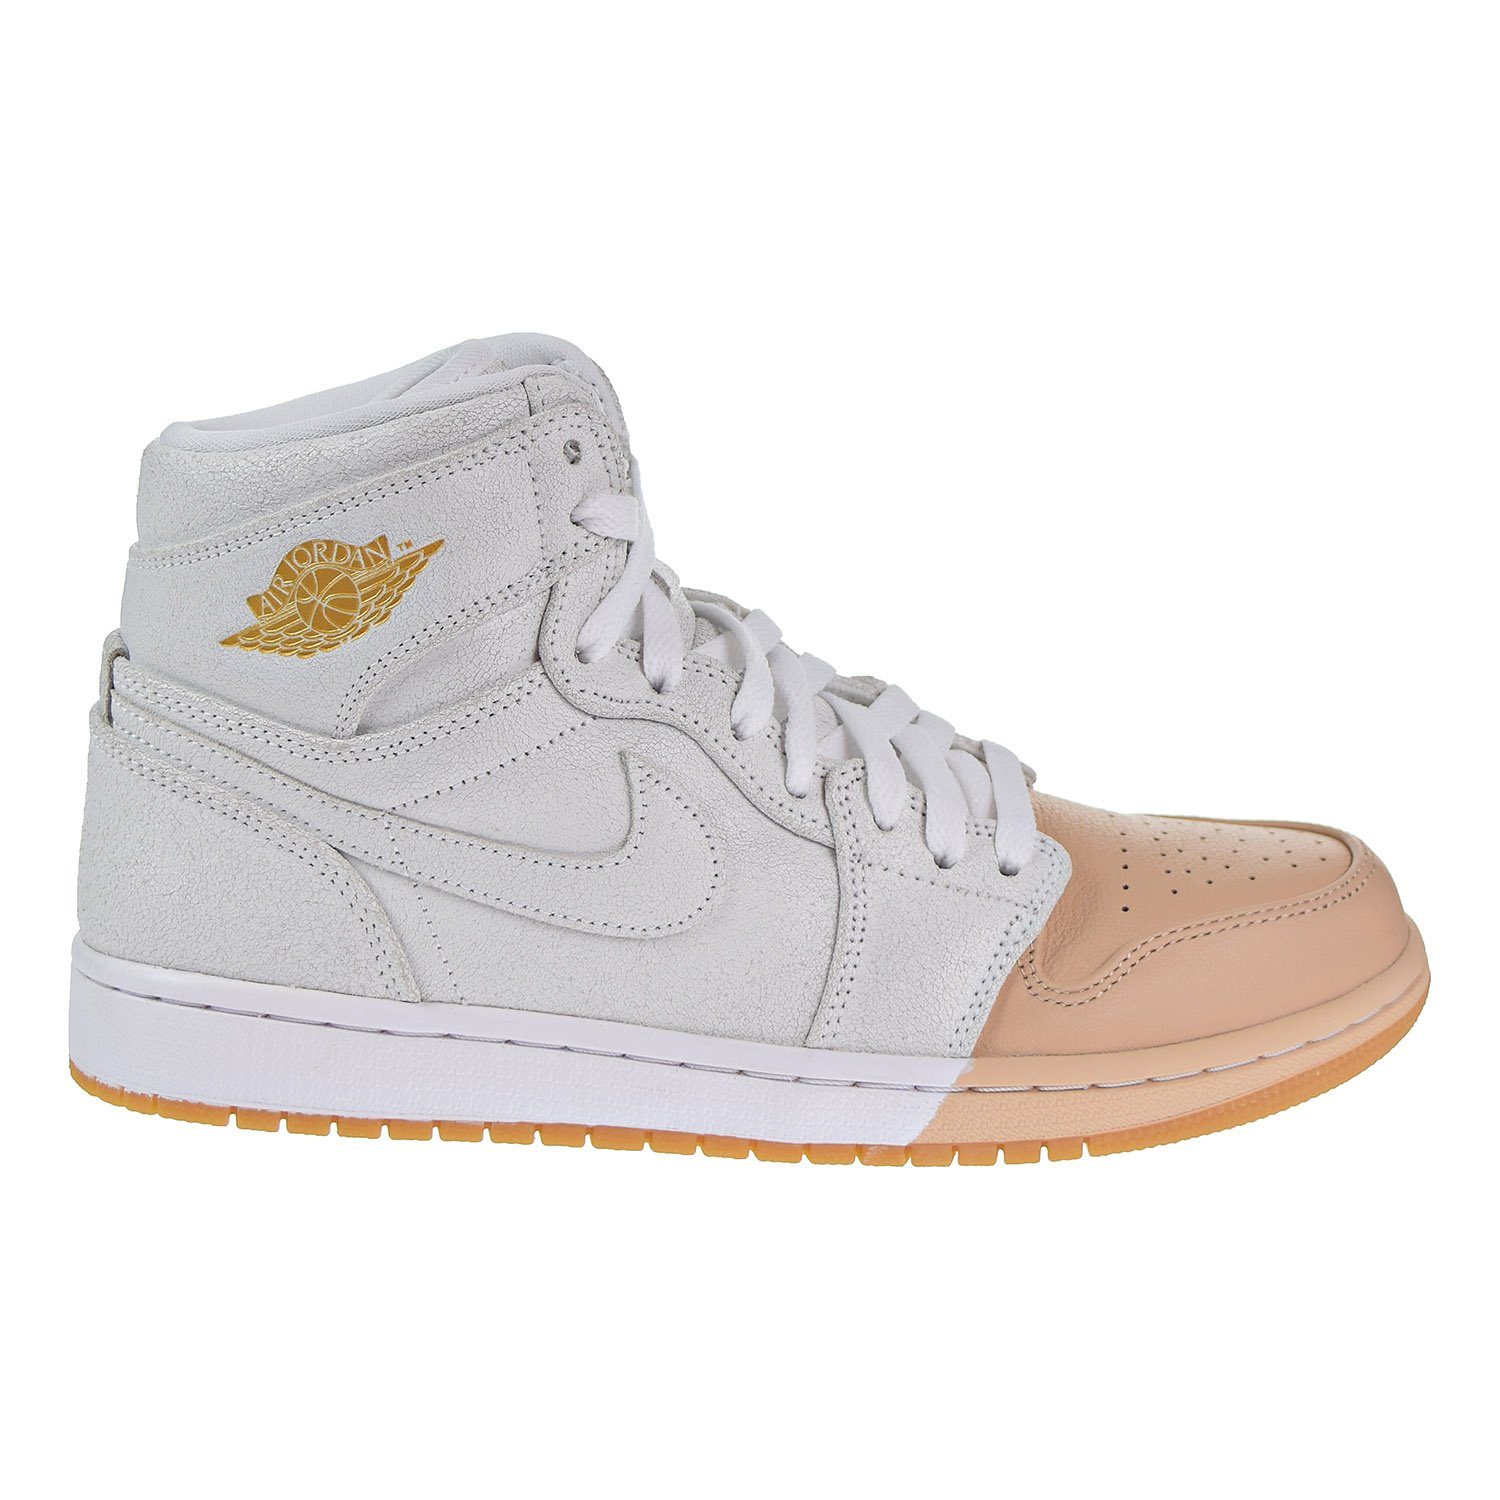 Jordan Nike Women's 1 Retro Hi Premium White/Metallic Gold Basketball Shoe 11 Women US by Jordan